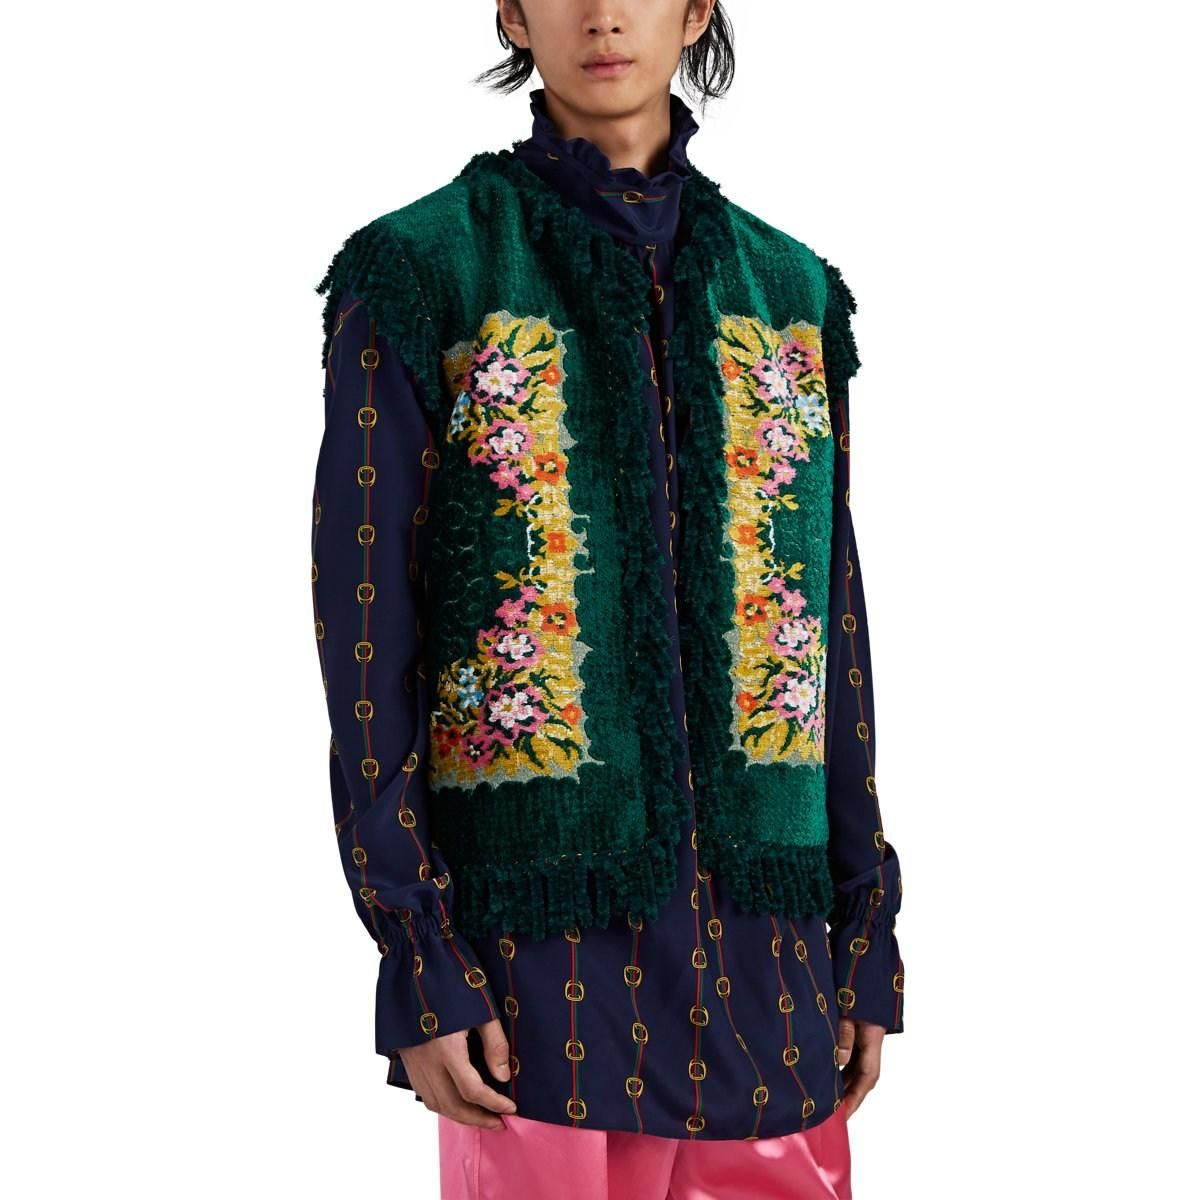 44b3733a203 Lyst - Gucci Fringed Floral Chenille & Basket-weave Vest in Green ...